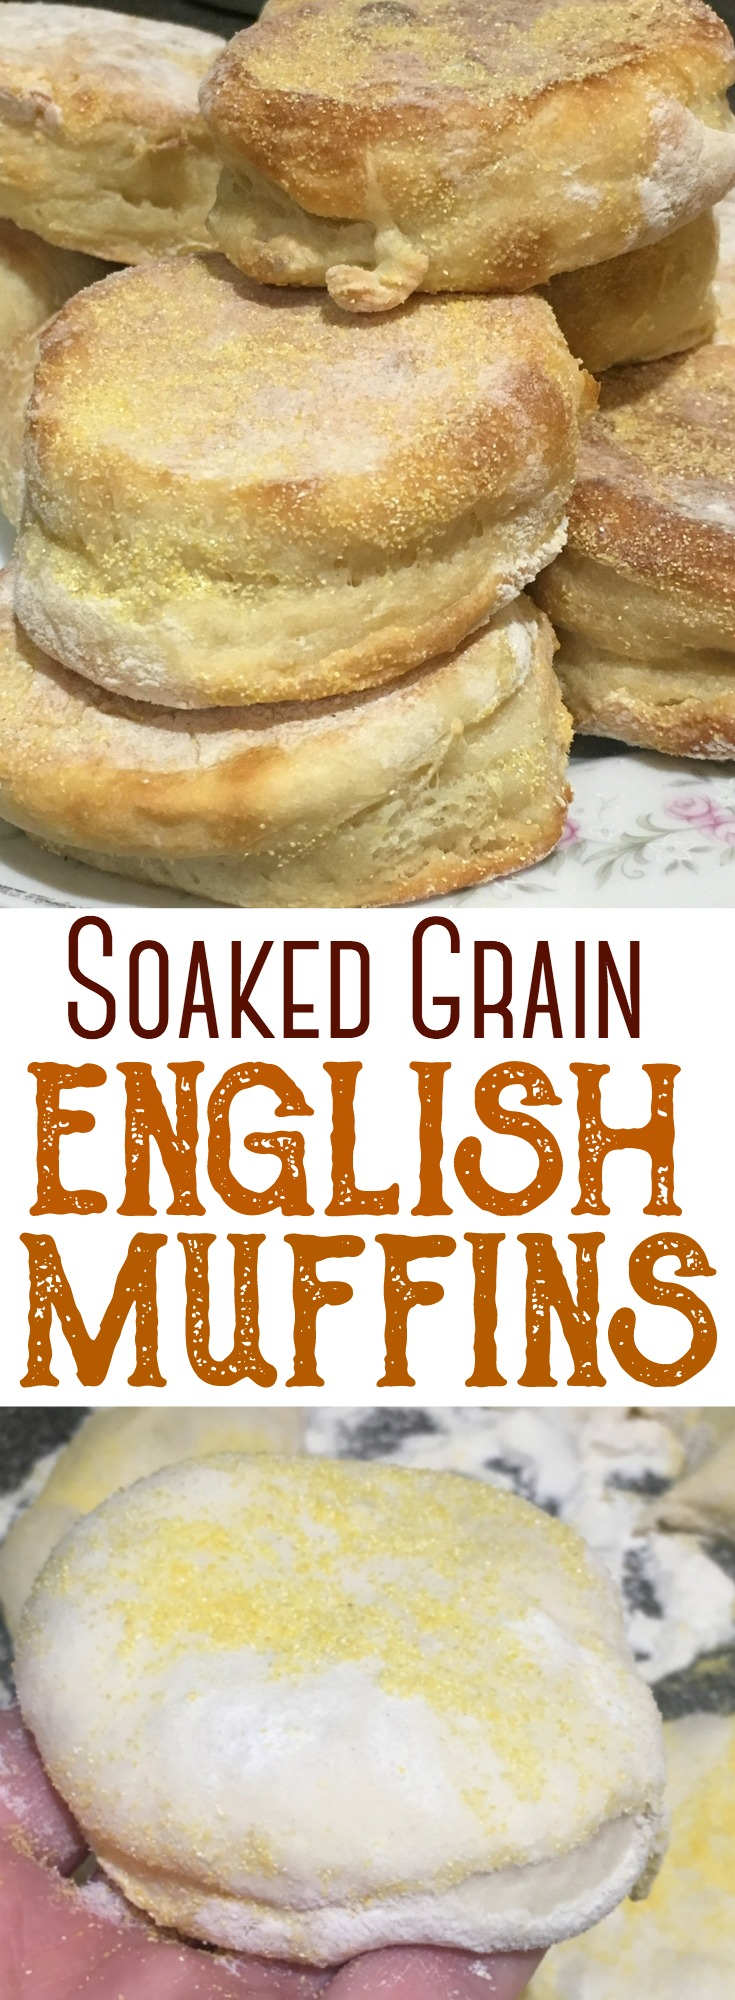 These soaked grain english muffins are a testament to traditional food preparation. Combine simple ingredients, soaked over time, to produce a wonderful, homemade english muffin that your family will love! #englishmuffins #soakedgrains #traditional #breadmaking #rawmilk